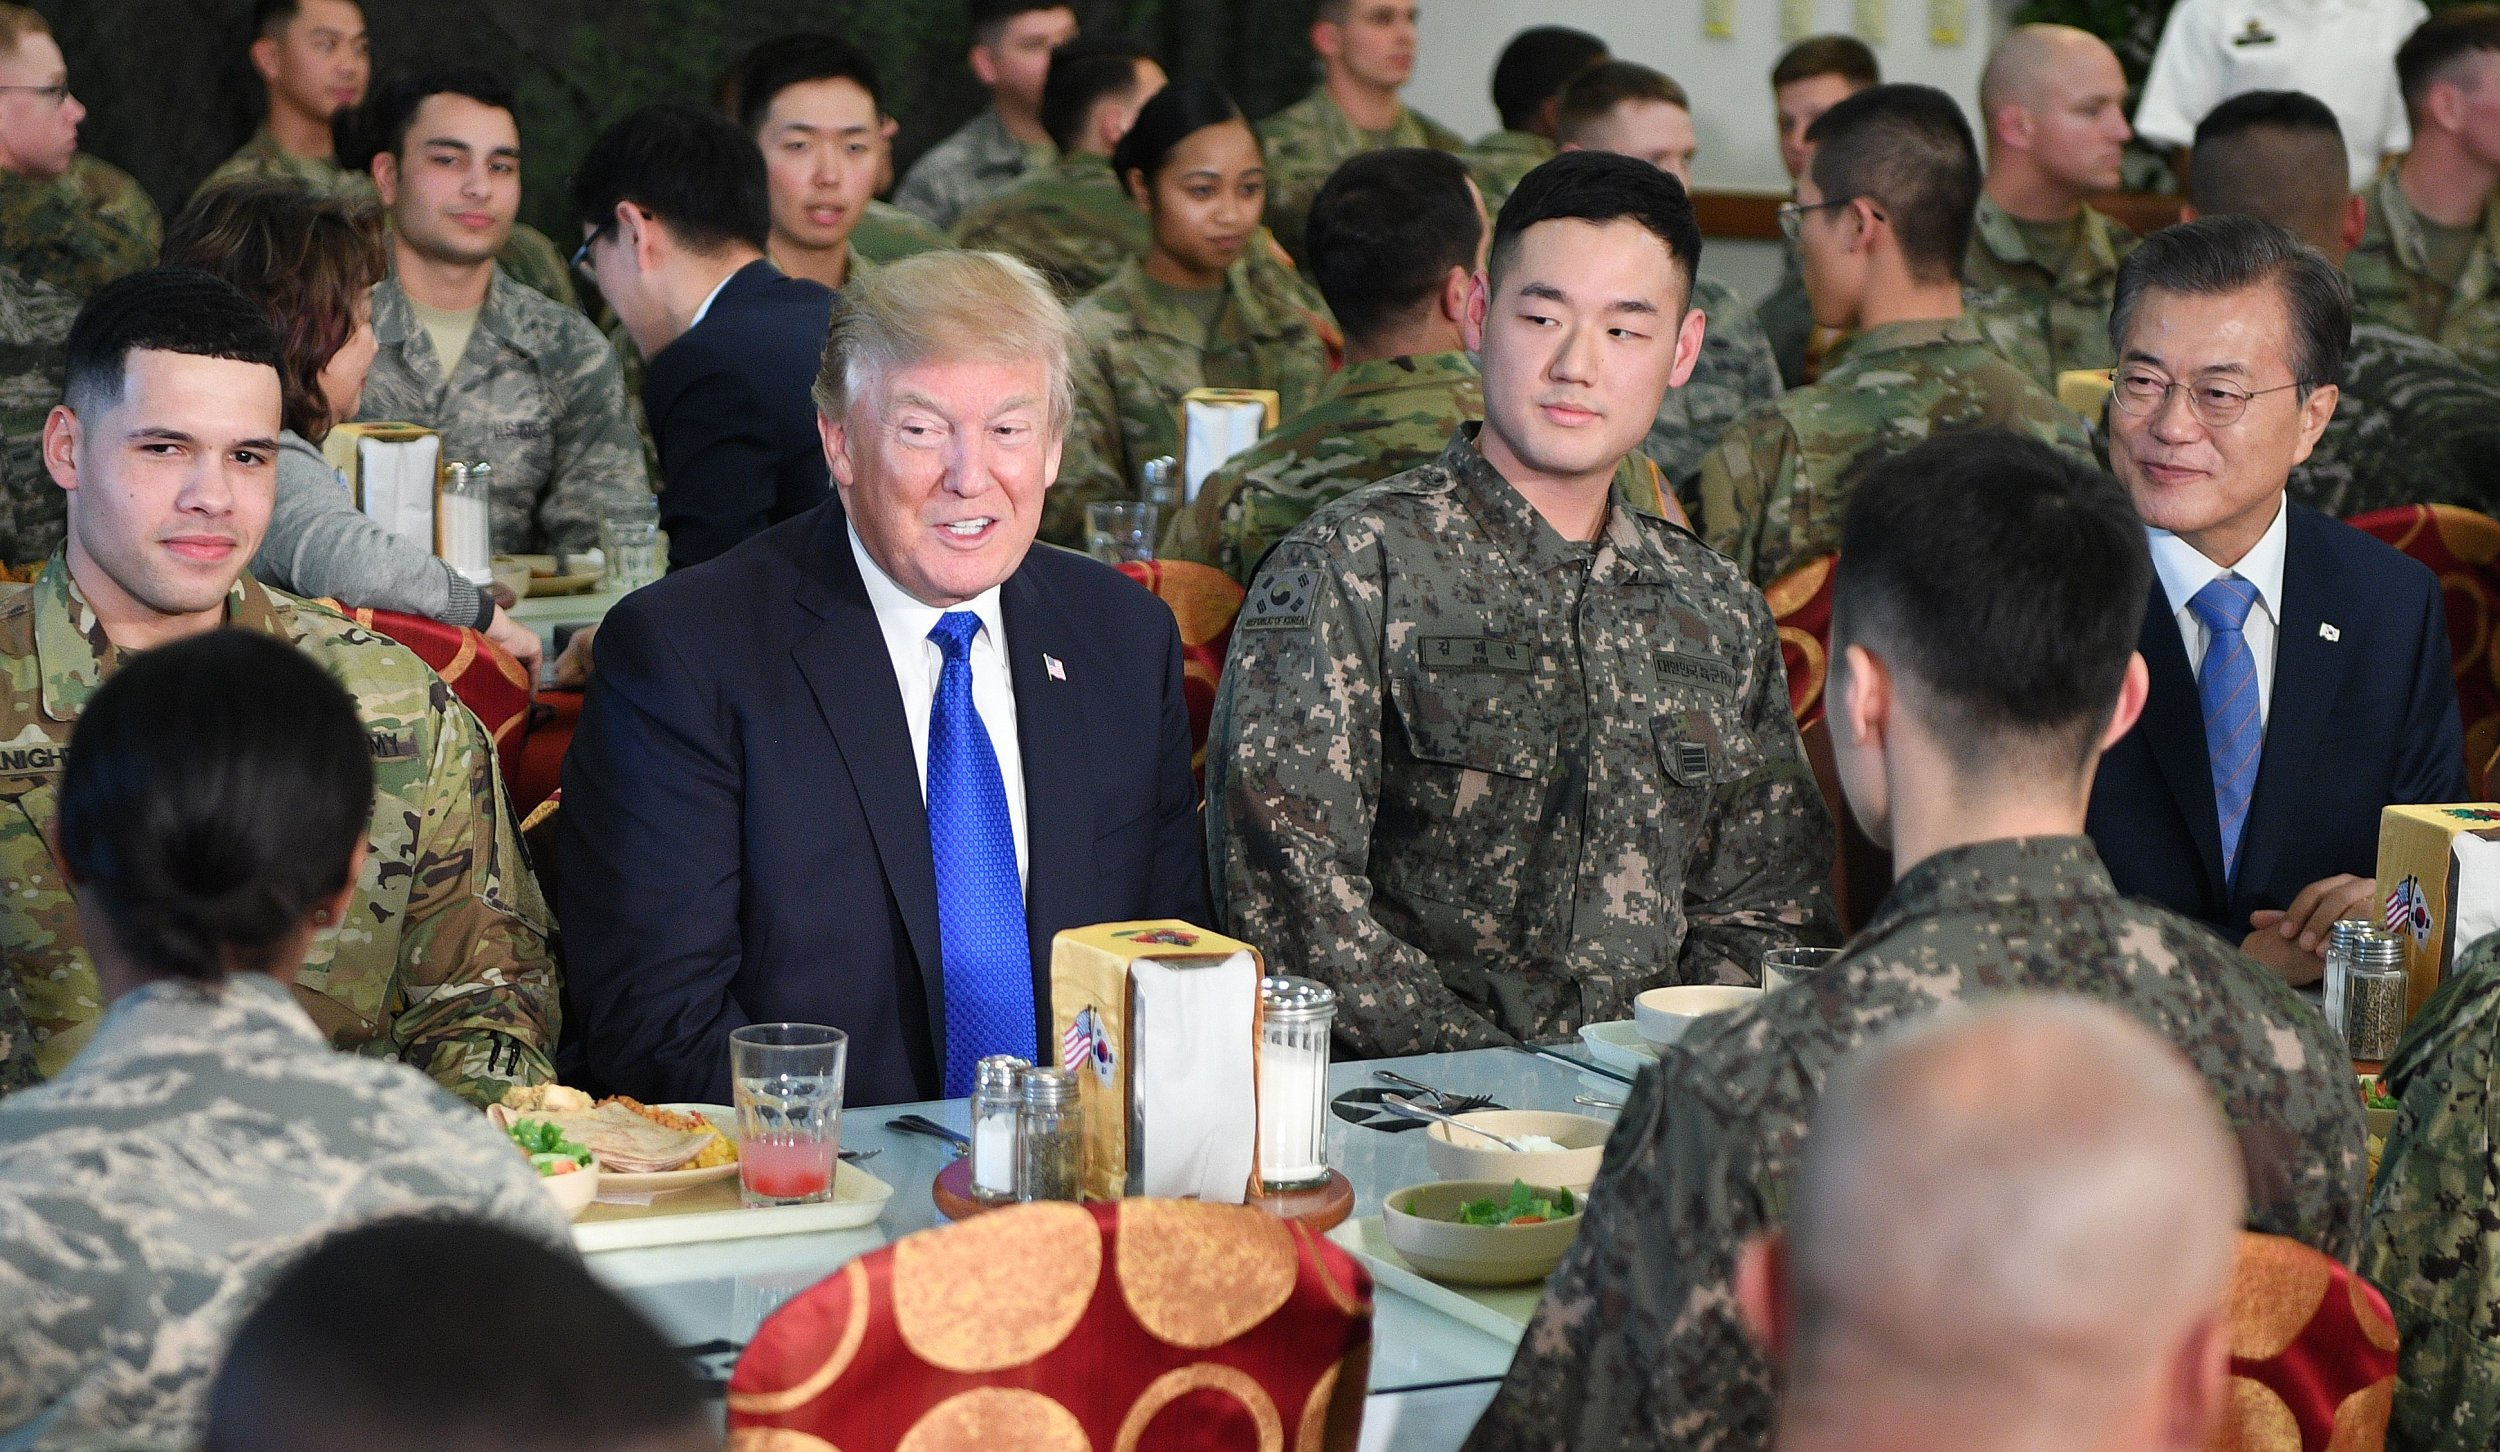 11_7_Trump_Camp Humphreys